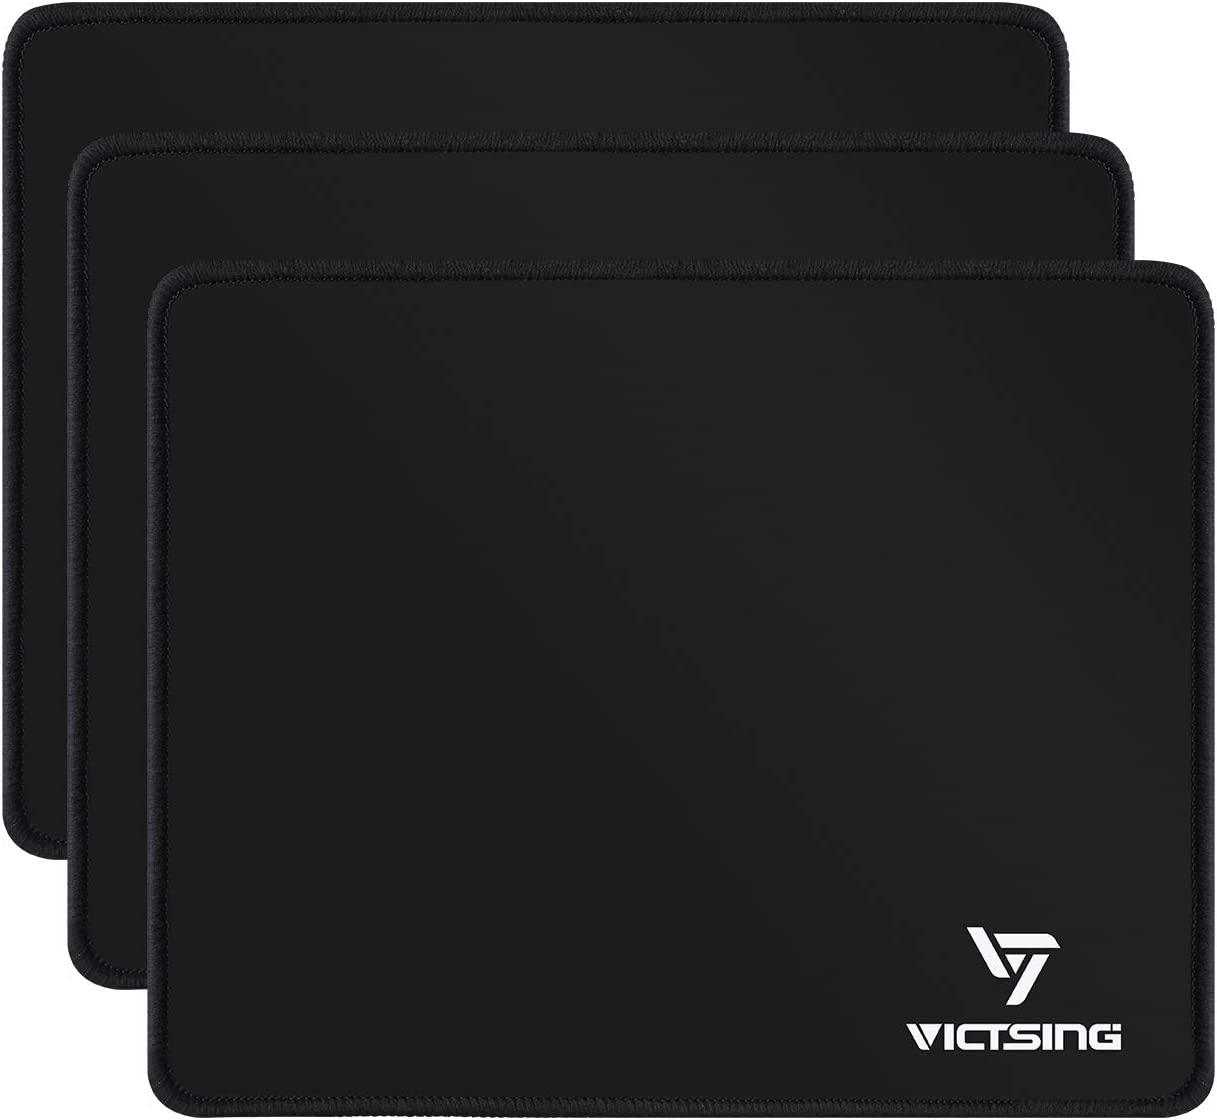 VicTsing 3Pack Mouse Pads with Stitched Edge, Premium-Textured Mouse Mat, Non-Slip Rubber Base Mousepad for Laptop, Computer & PC, 10.2×8.3×0.08 inches, Black